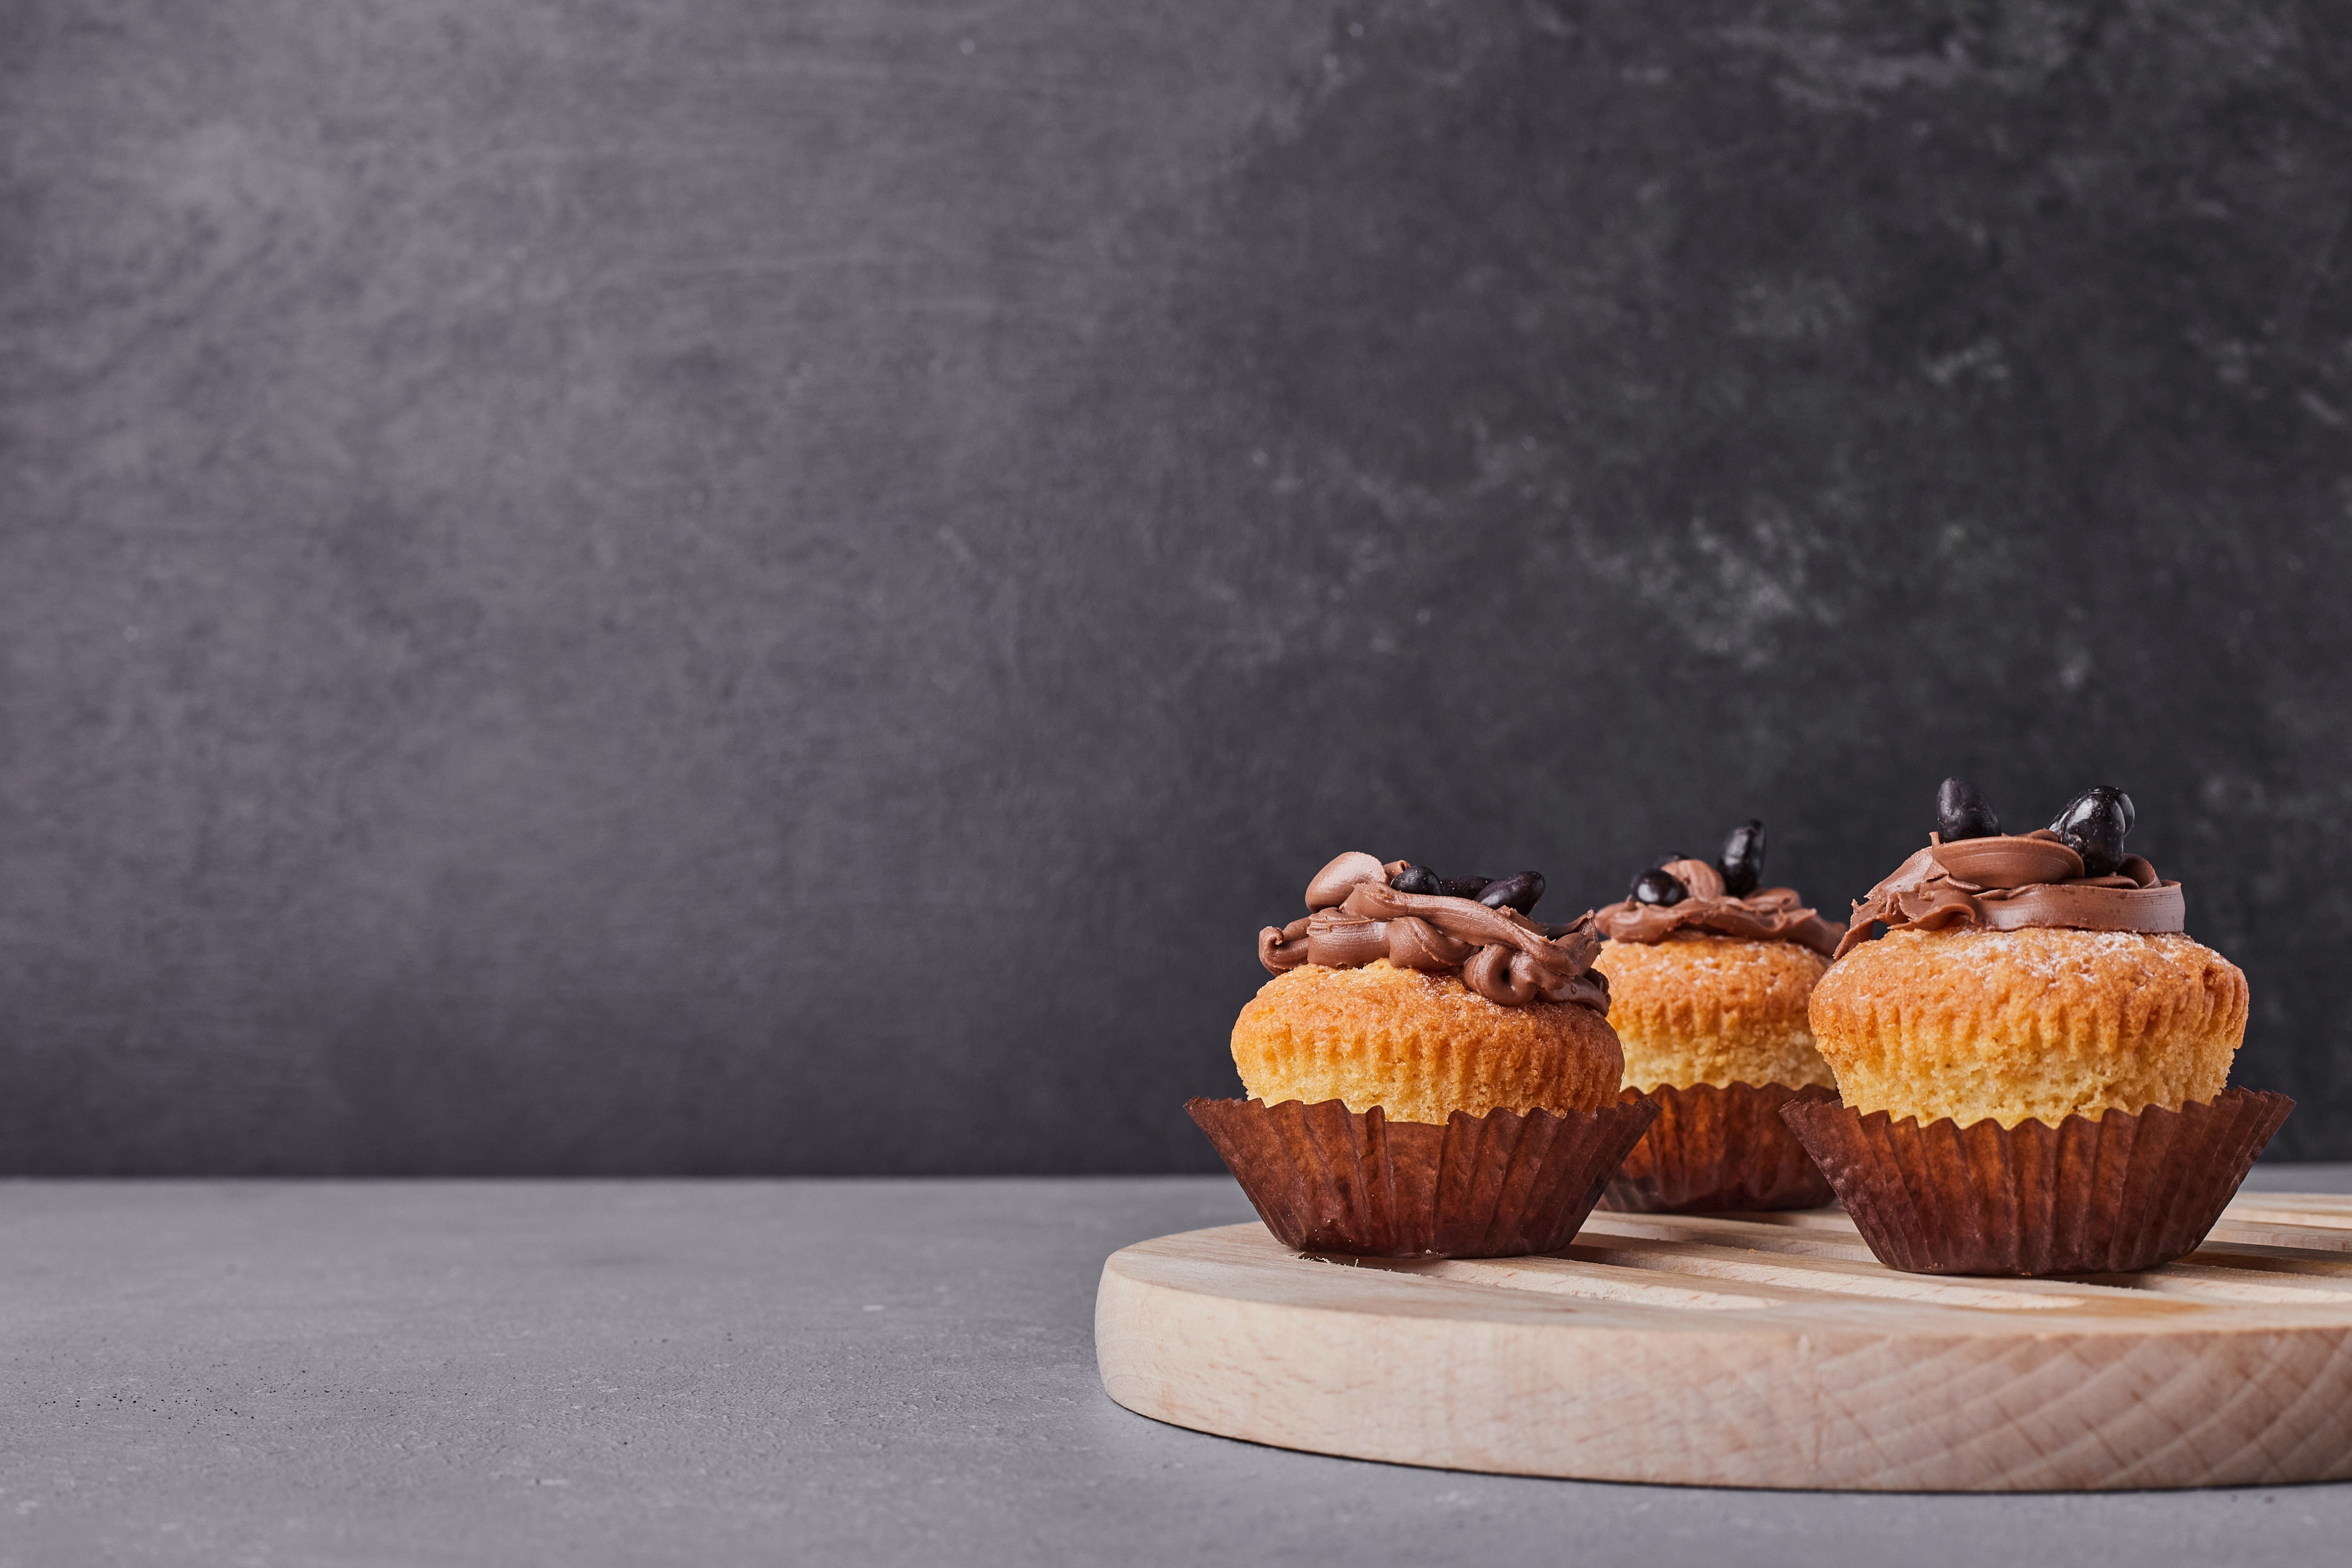 Plantain flour cupcakes with chocolate cream on wooden platter